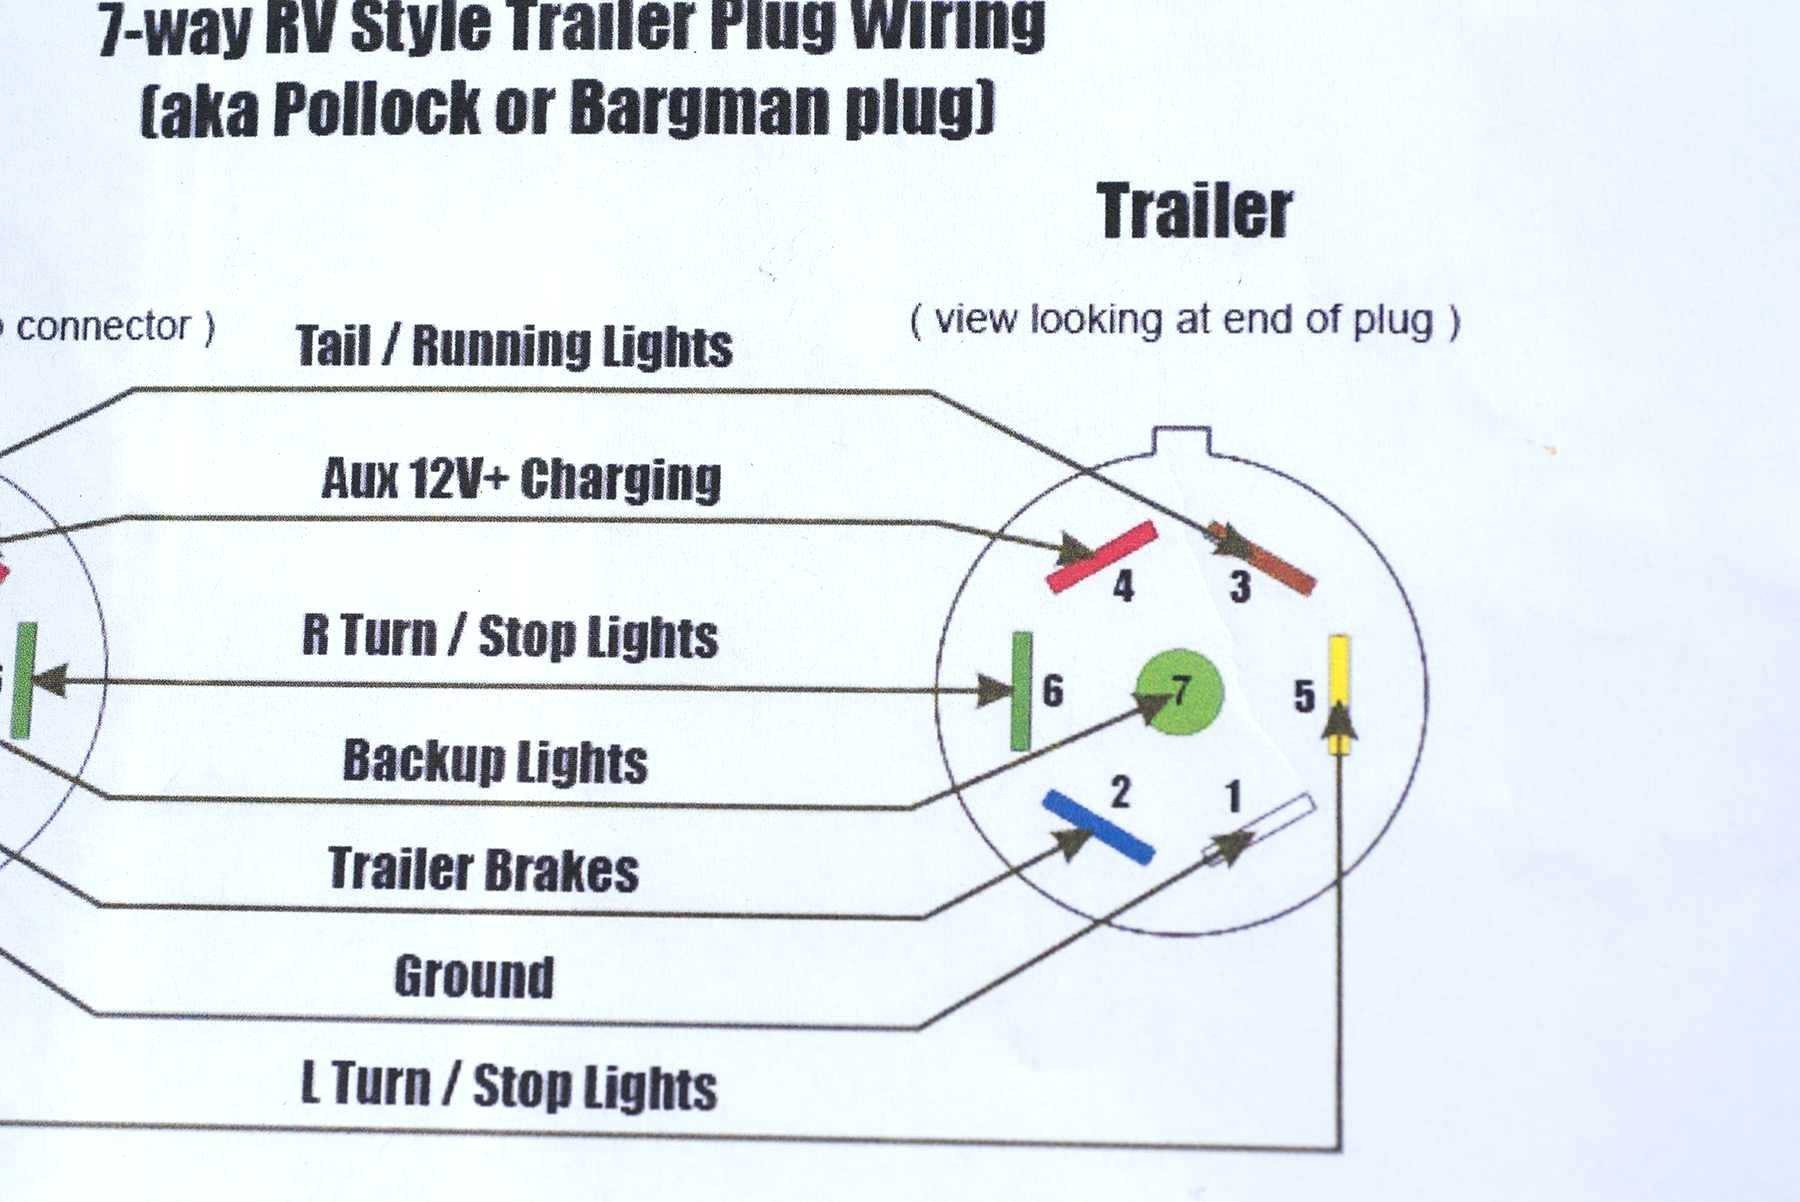 Chevy 7 Pin Wiring Diagram - Wiring Diagrams Click - 12 Pin Trailer Plug Wiring Diagram